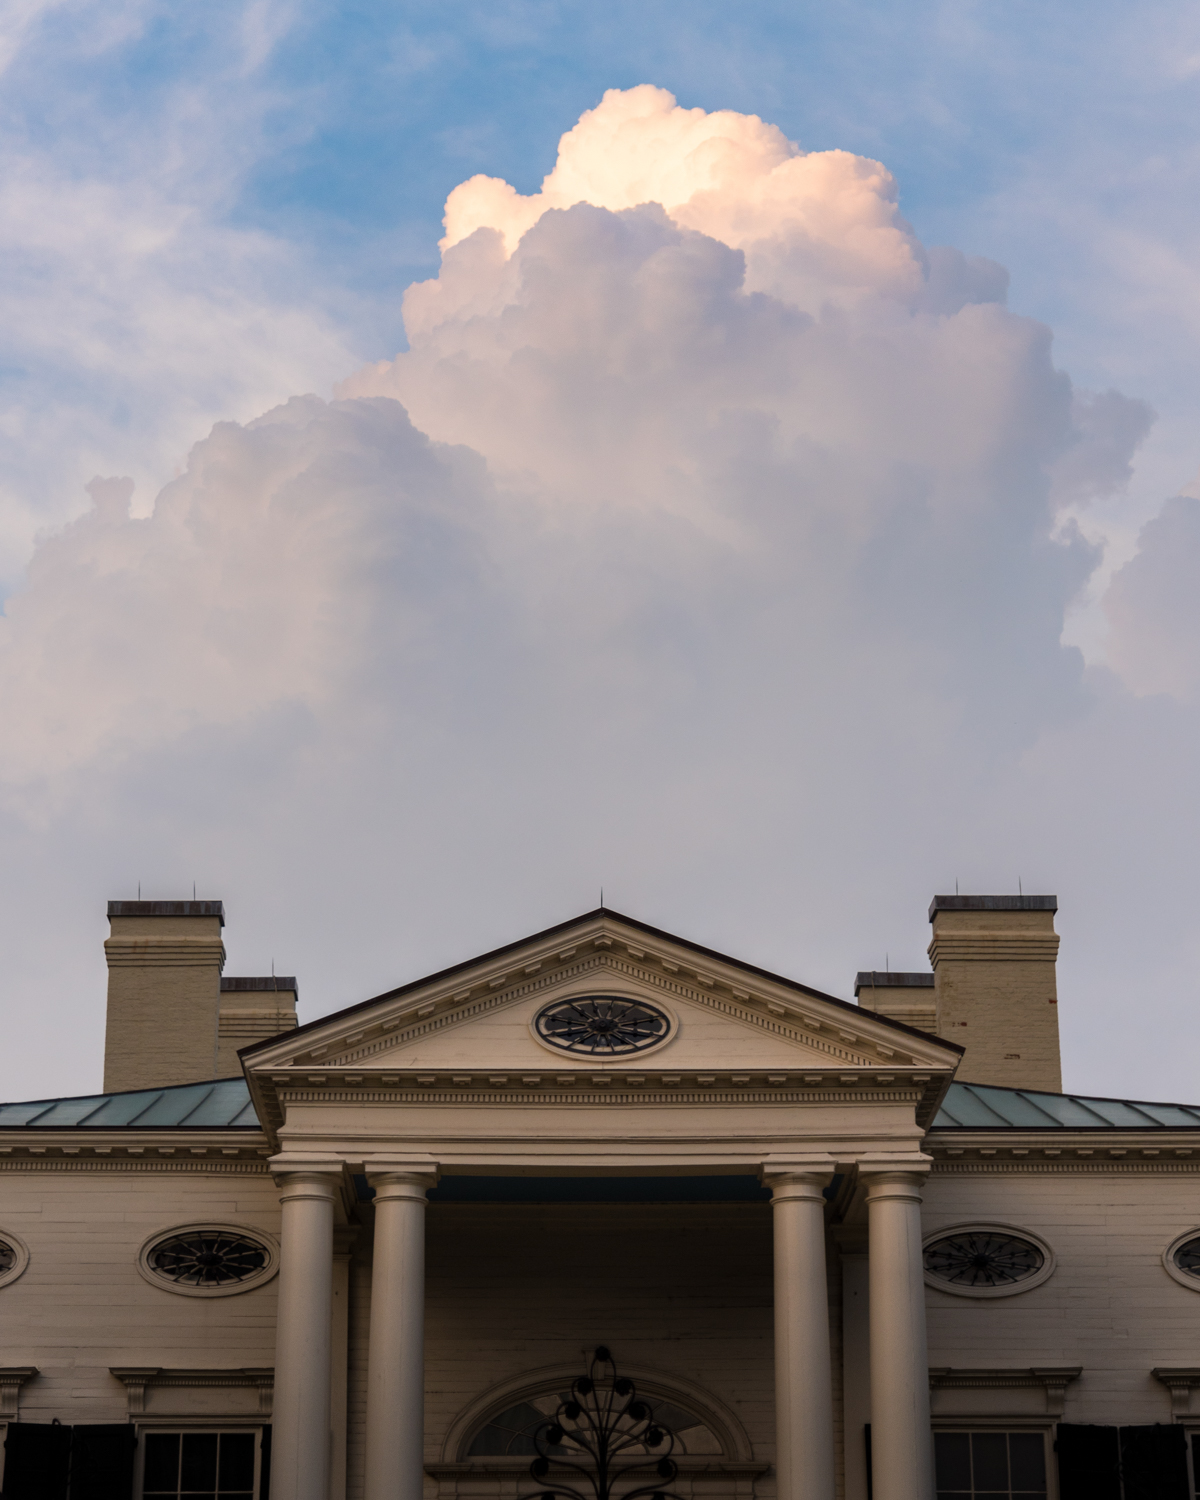 The city meets the sky at the Taft Museum in Lytle Park / Image: Phil Armstrong, Cincinnati Refined